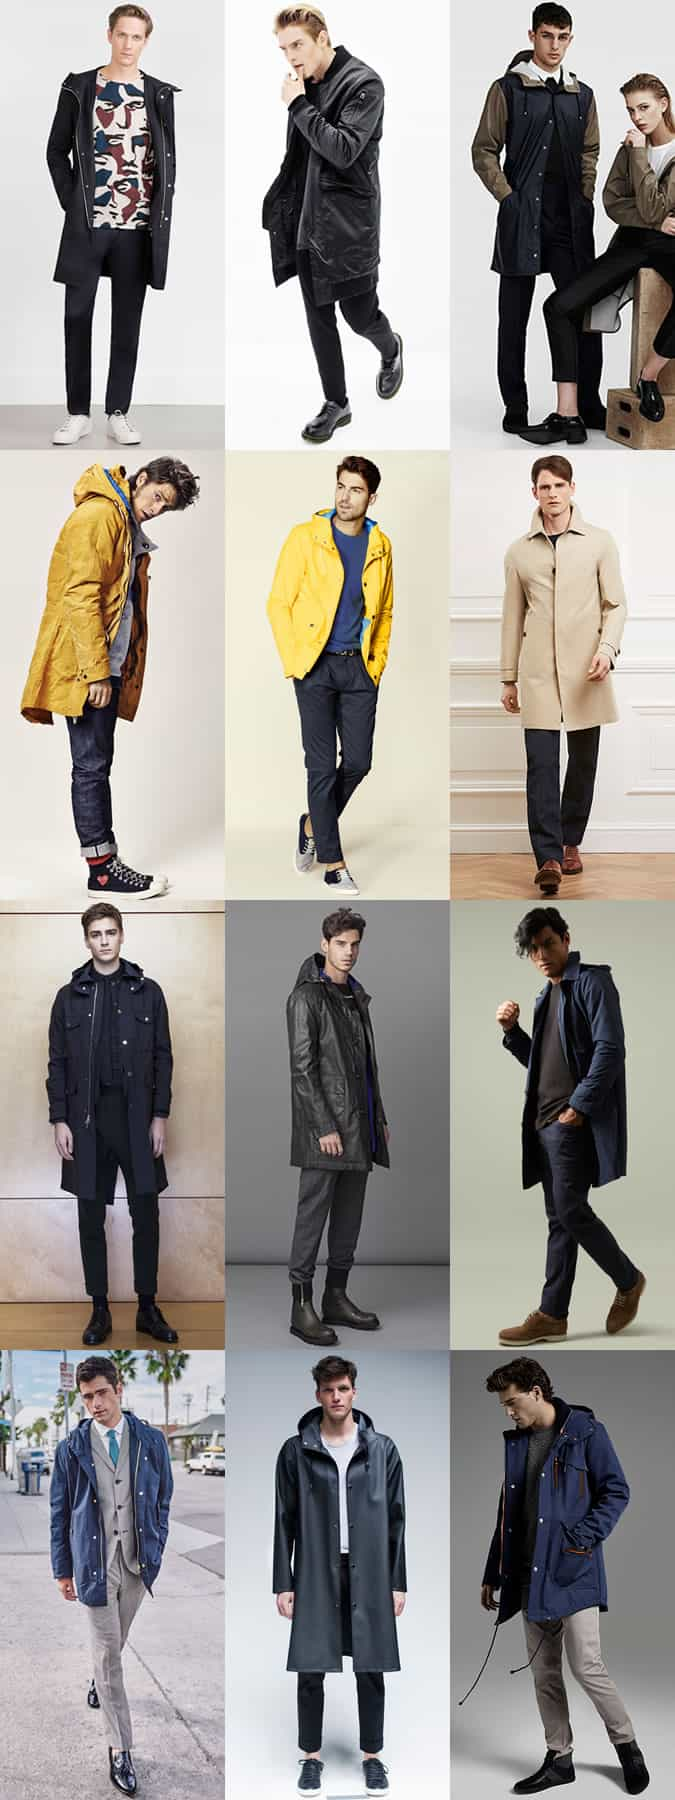 Men's Waterproof Rain Coats Autumn Outfit Inspiration Lookbook